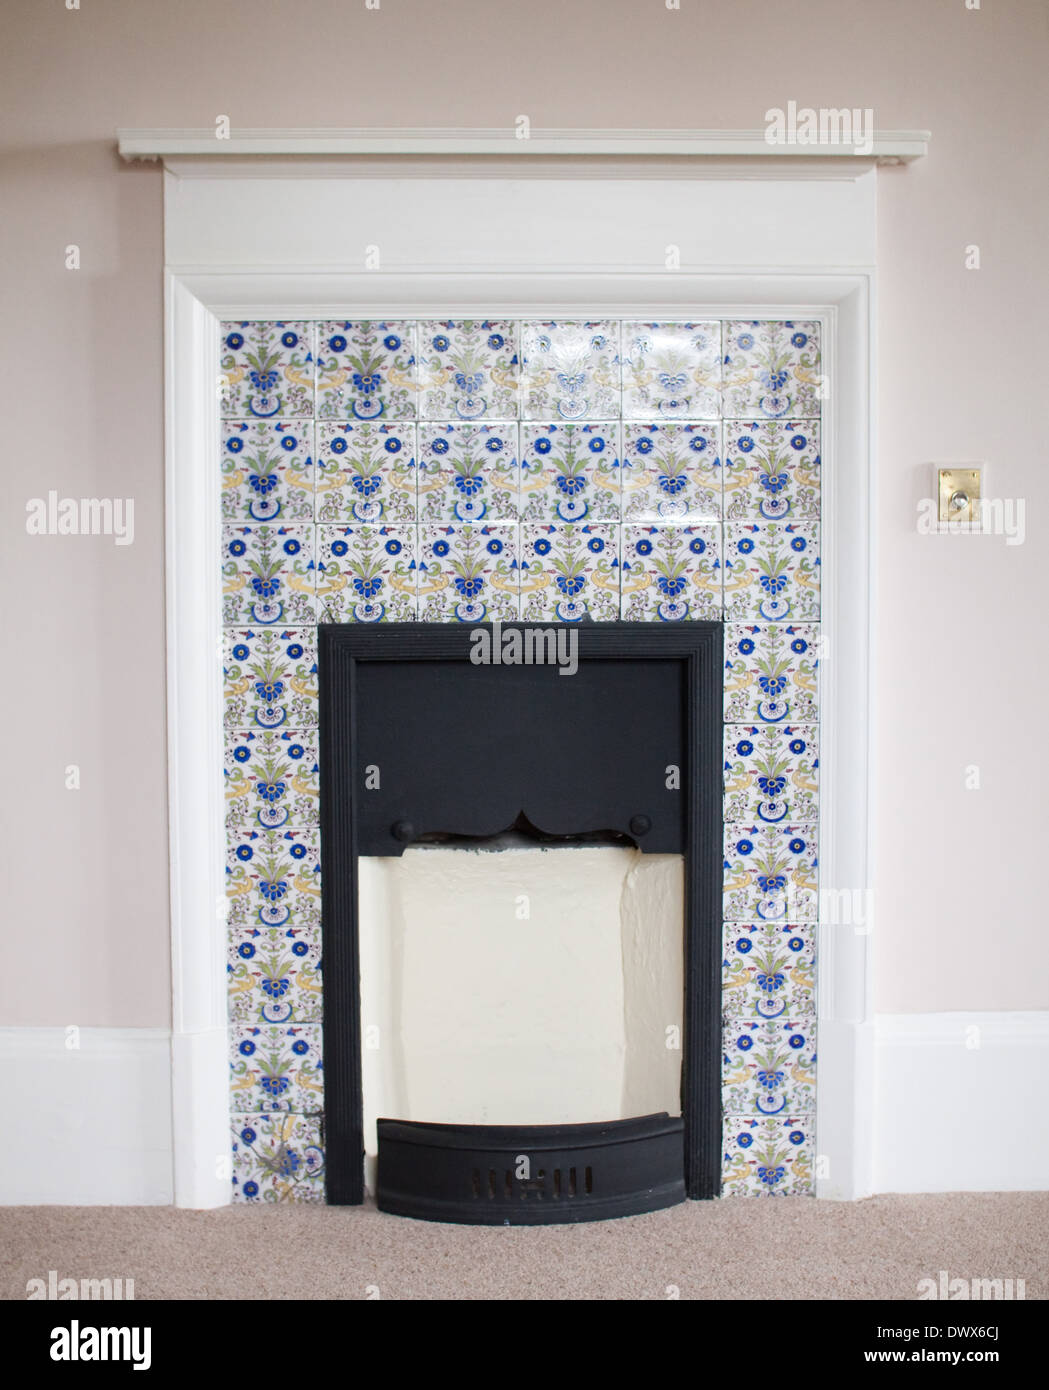 delftware tiles round a fireplace in an english manor house in